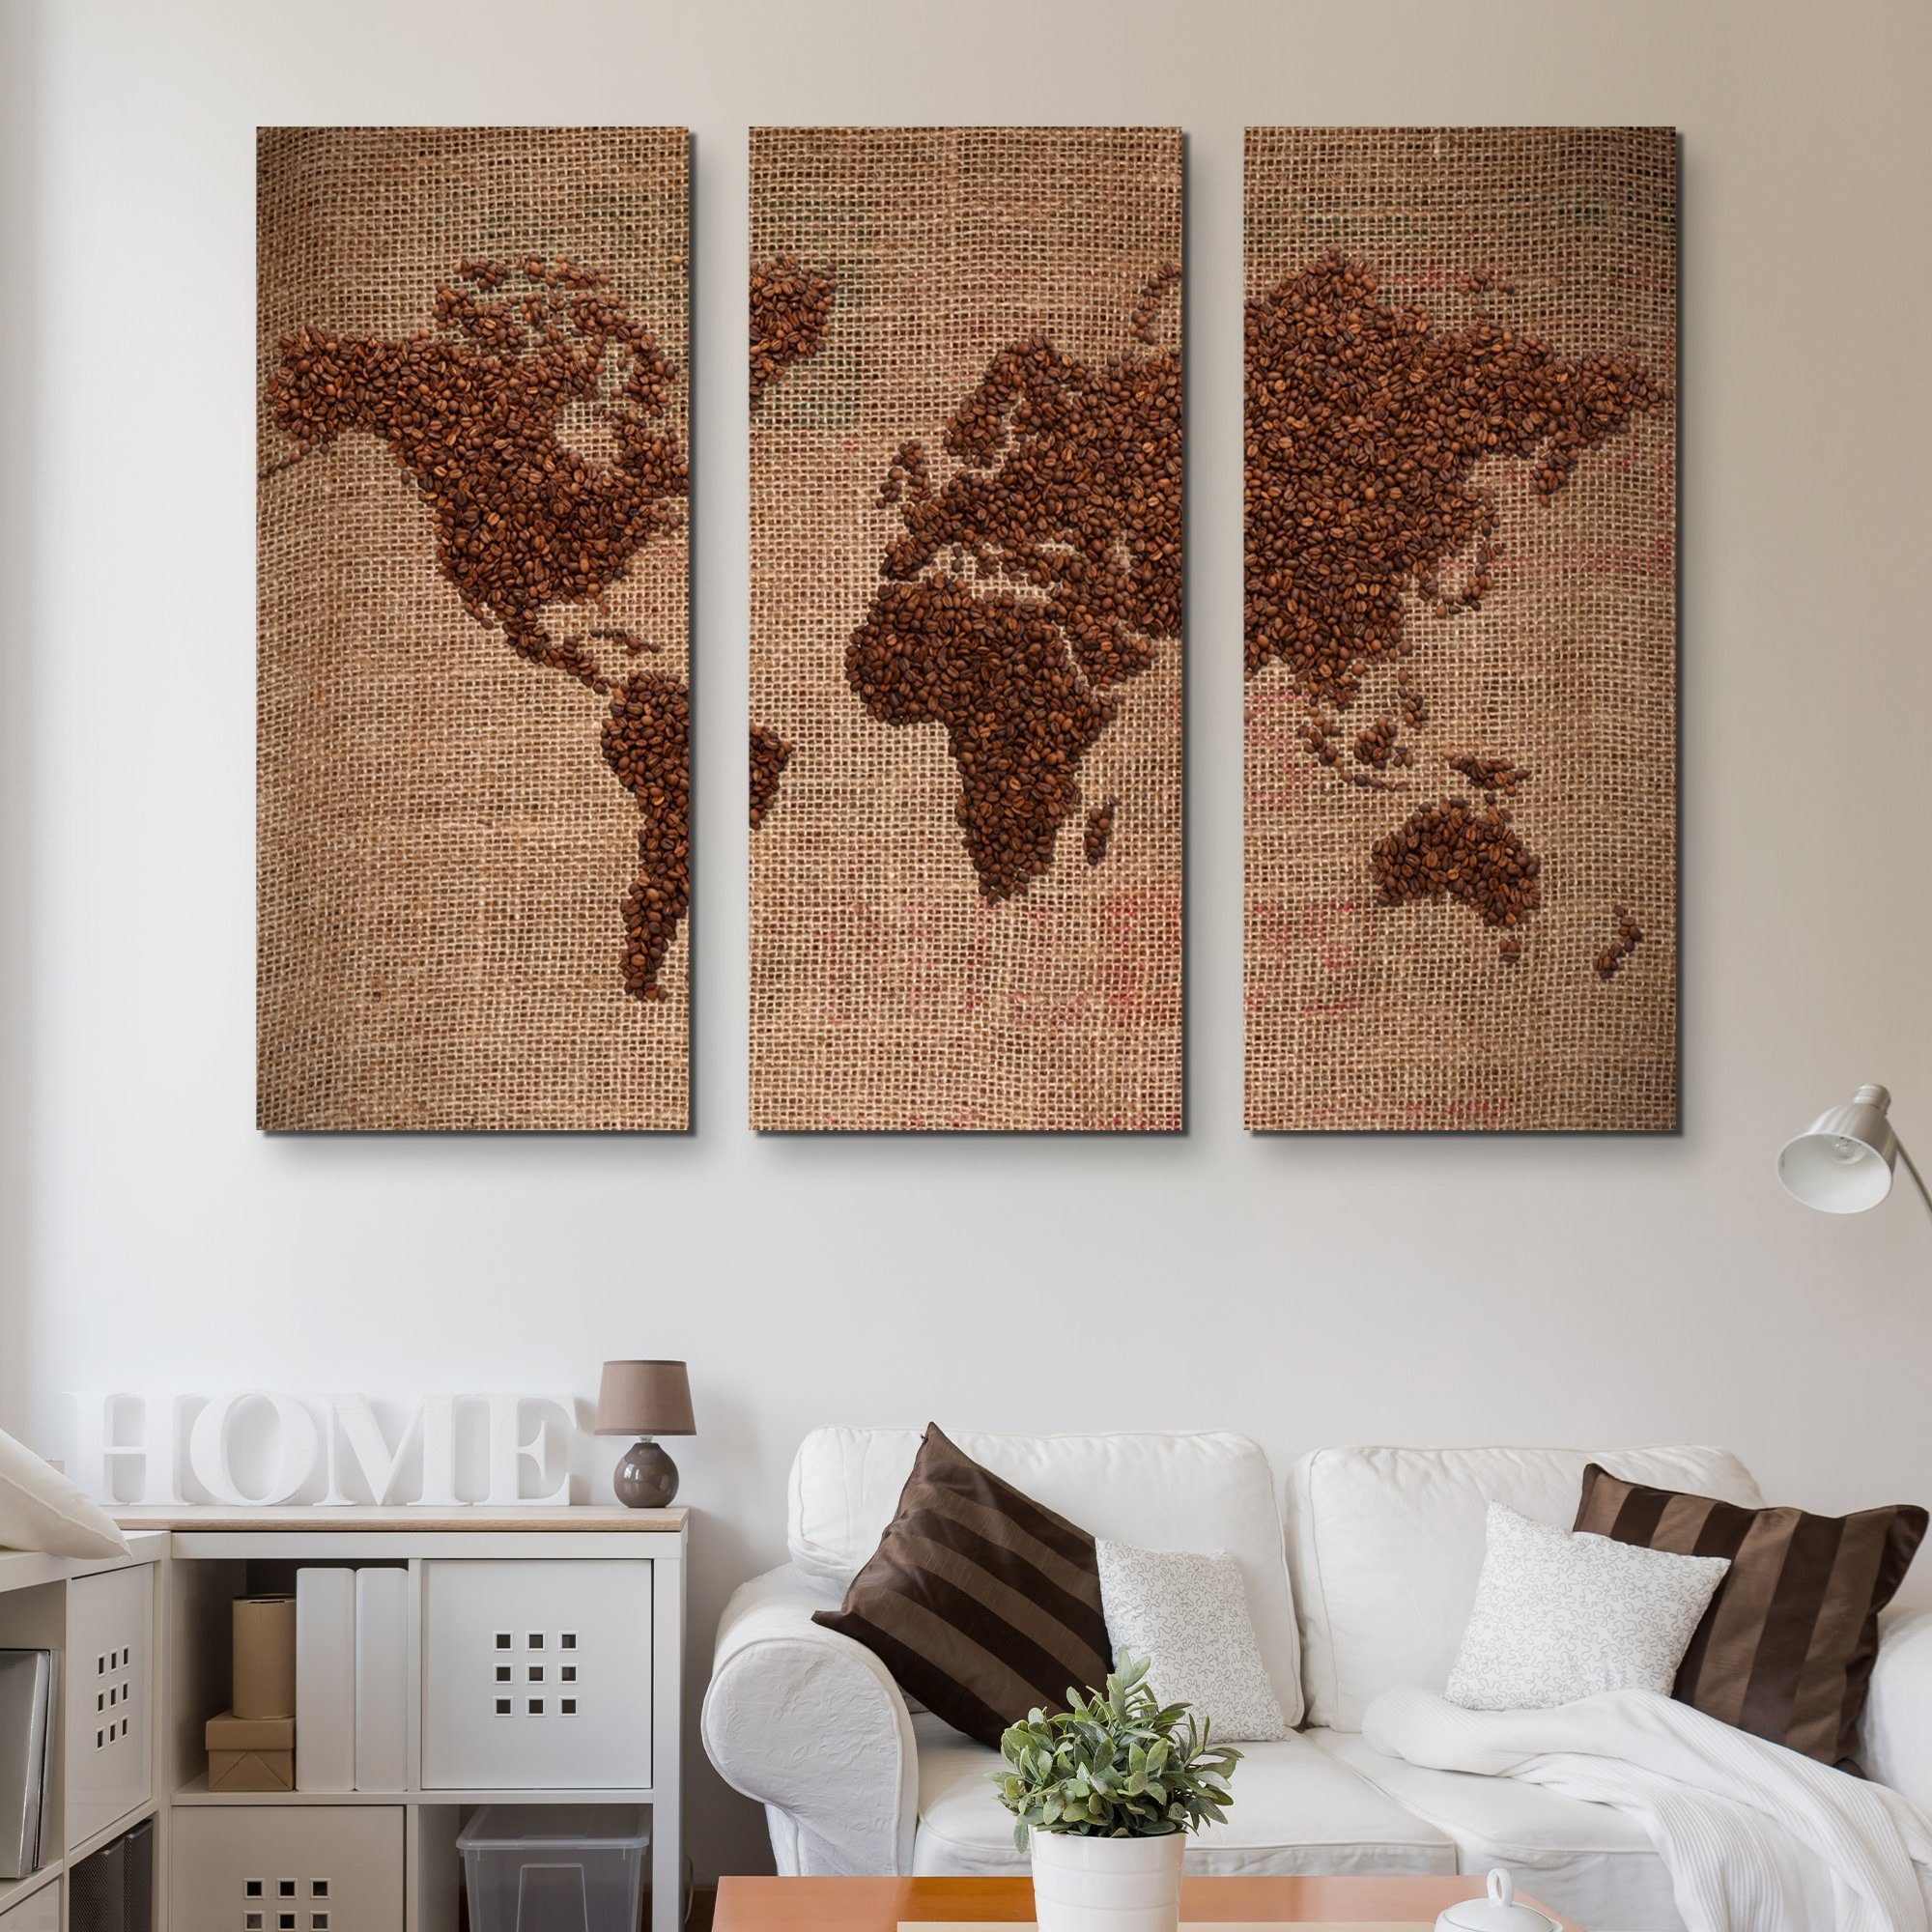 3 piece World of Coffee wall art